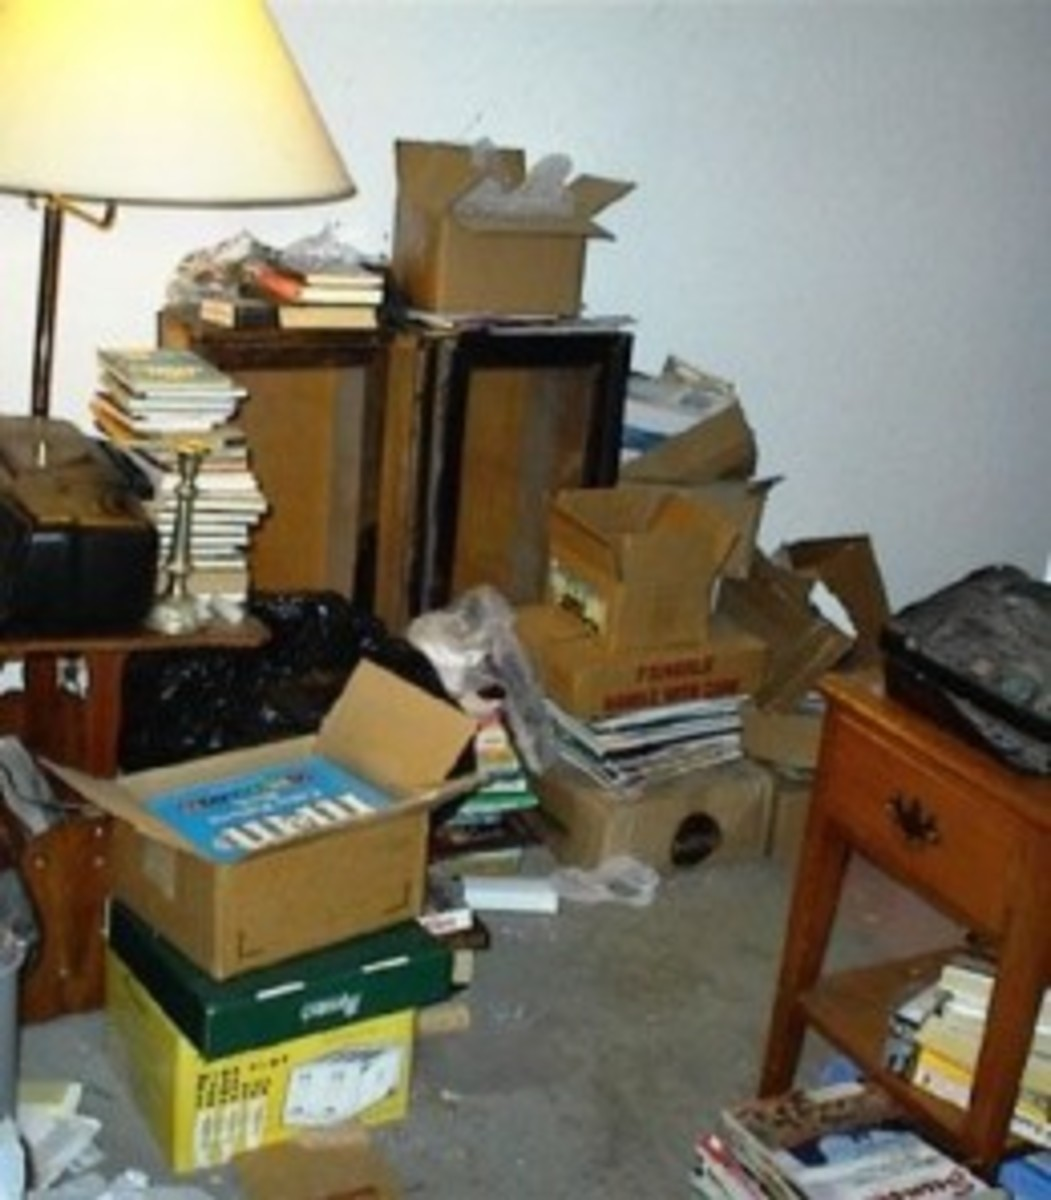 To the right of the lamp against the wall, you see what is left of our lawyer style bookcase with the glass doors. It had four shelves, but only two were left. This toppled towards the front door and was part of what was holding the fallen hat rack i